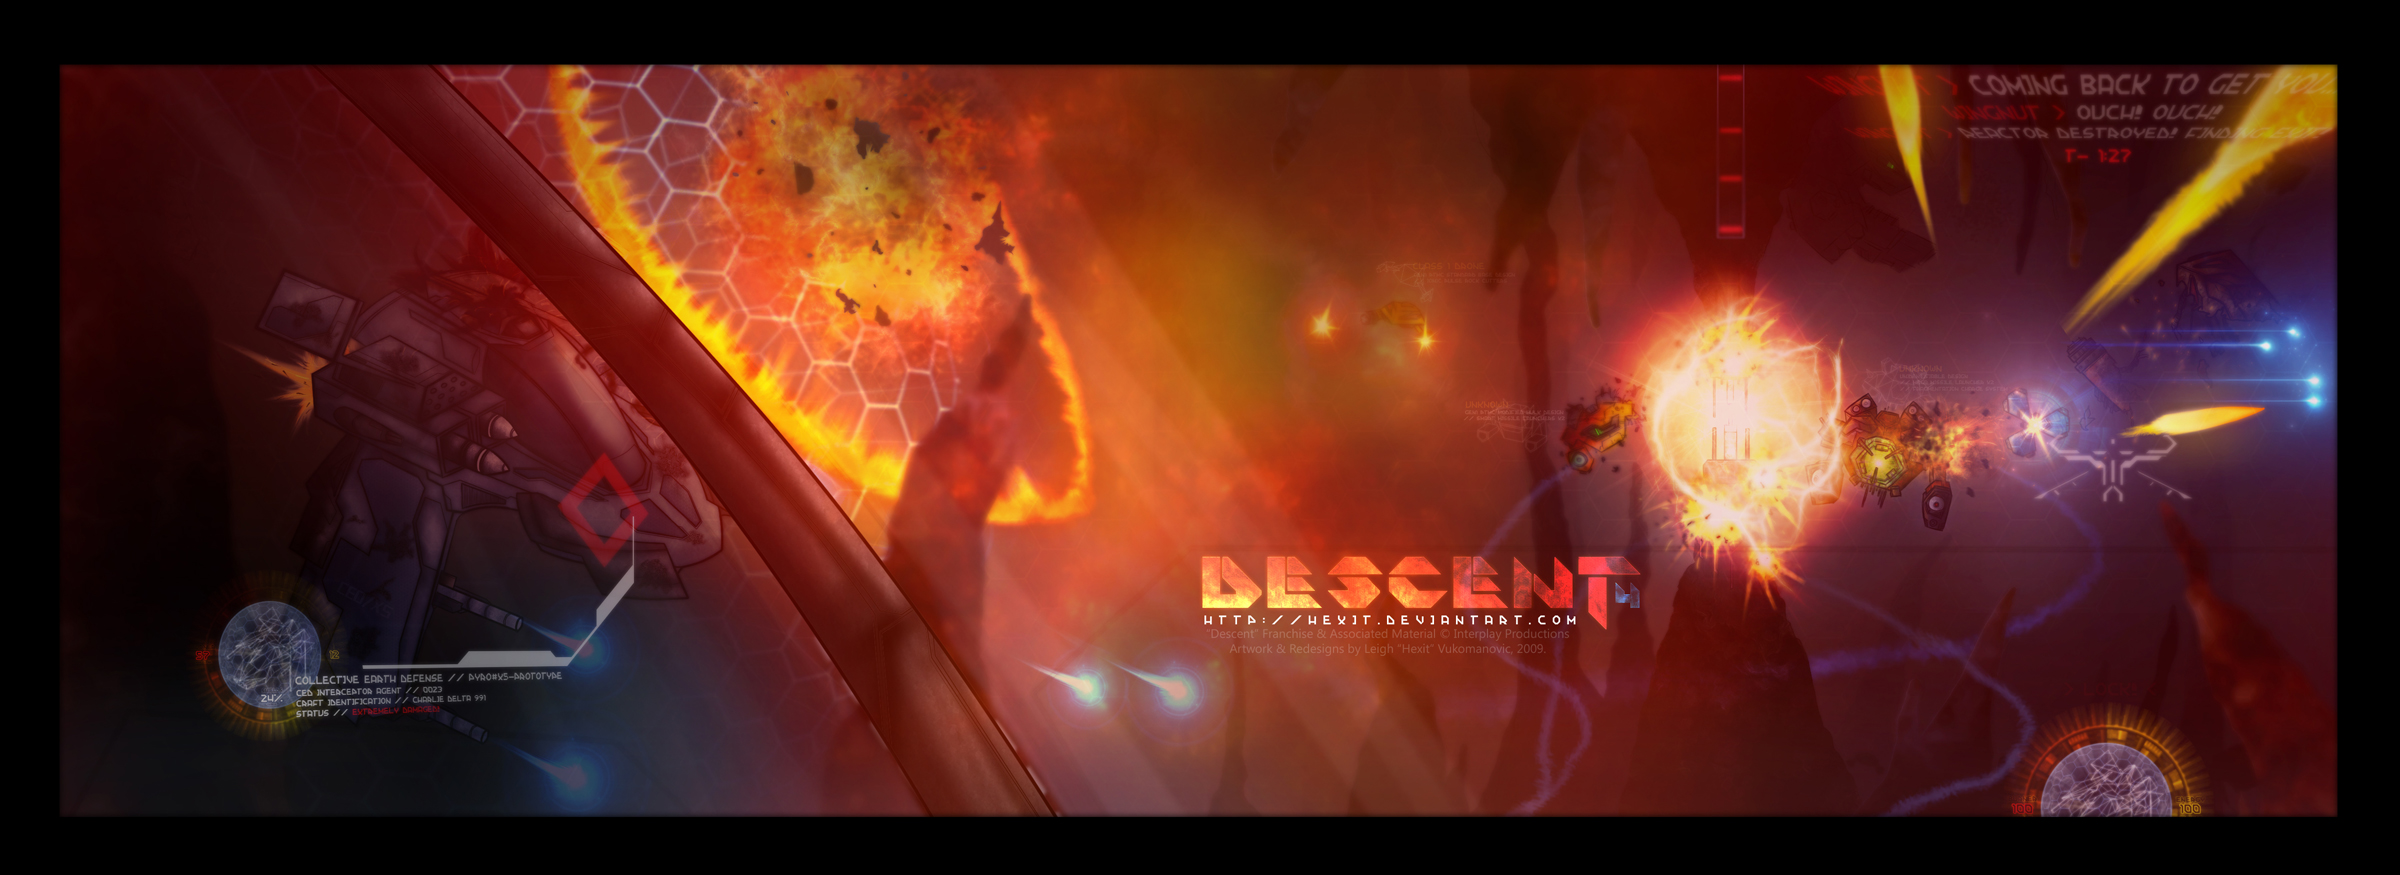 Descent 4 v1 by Hexit